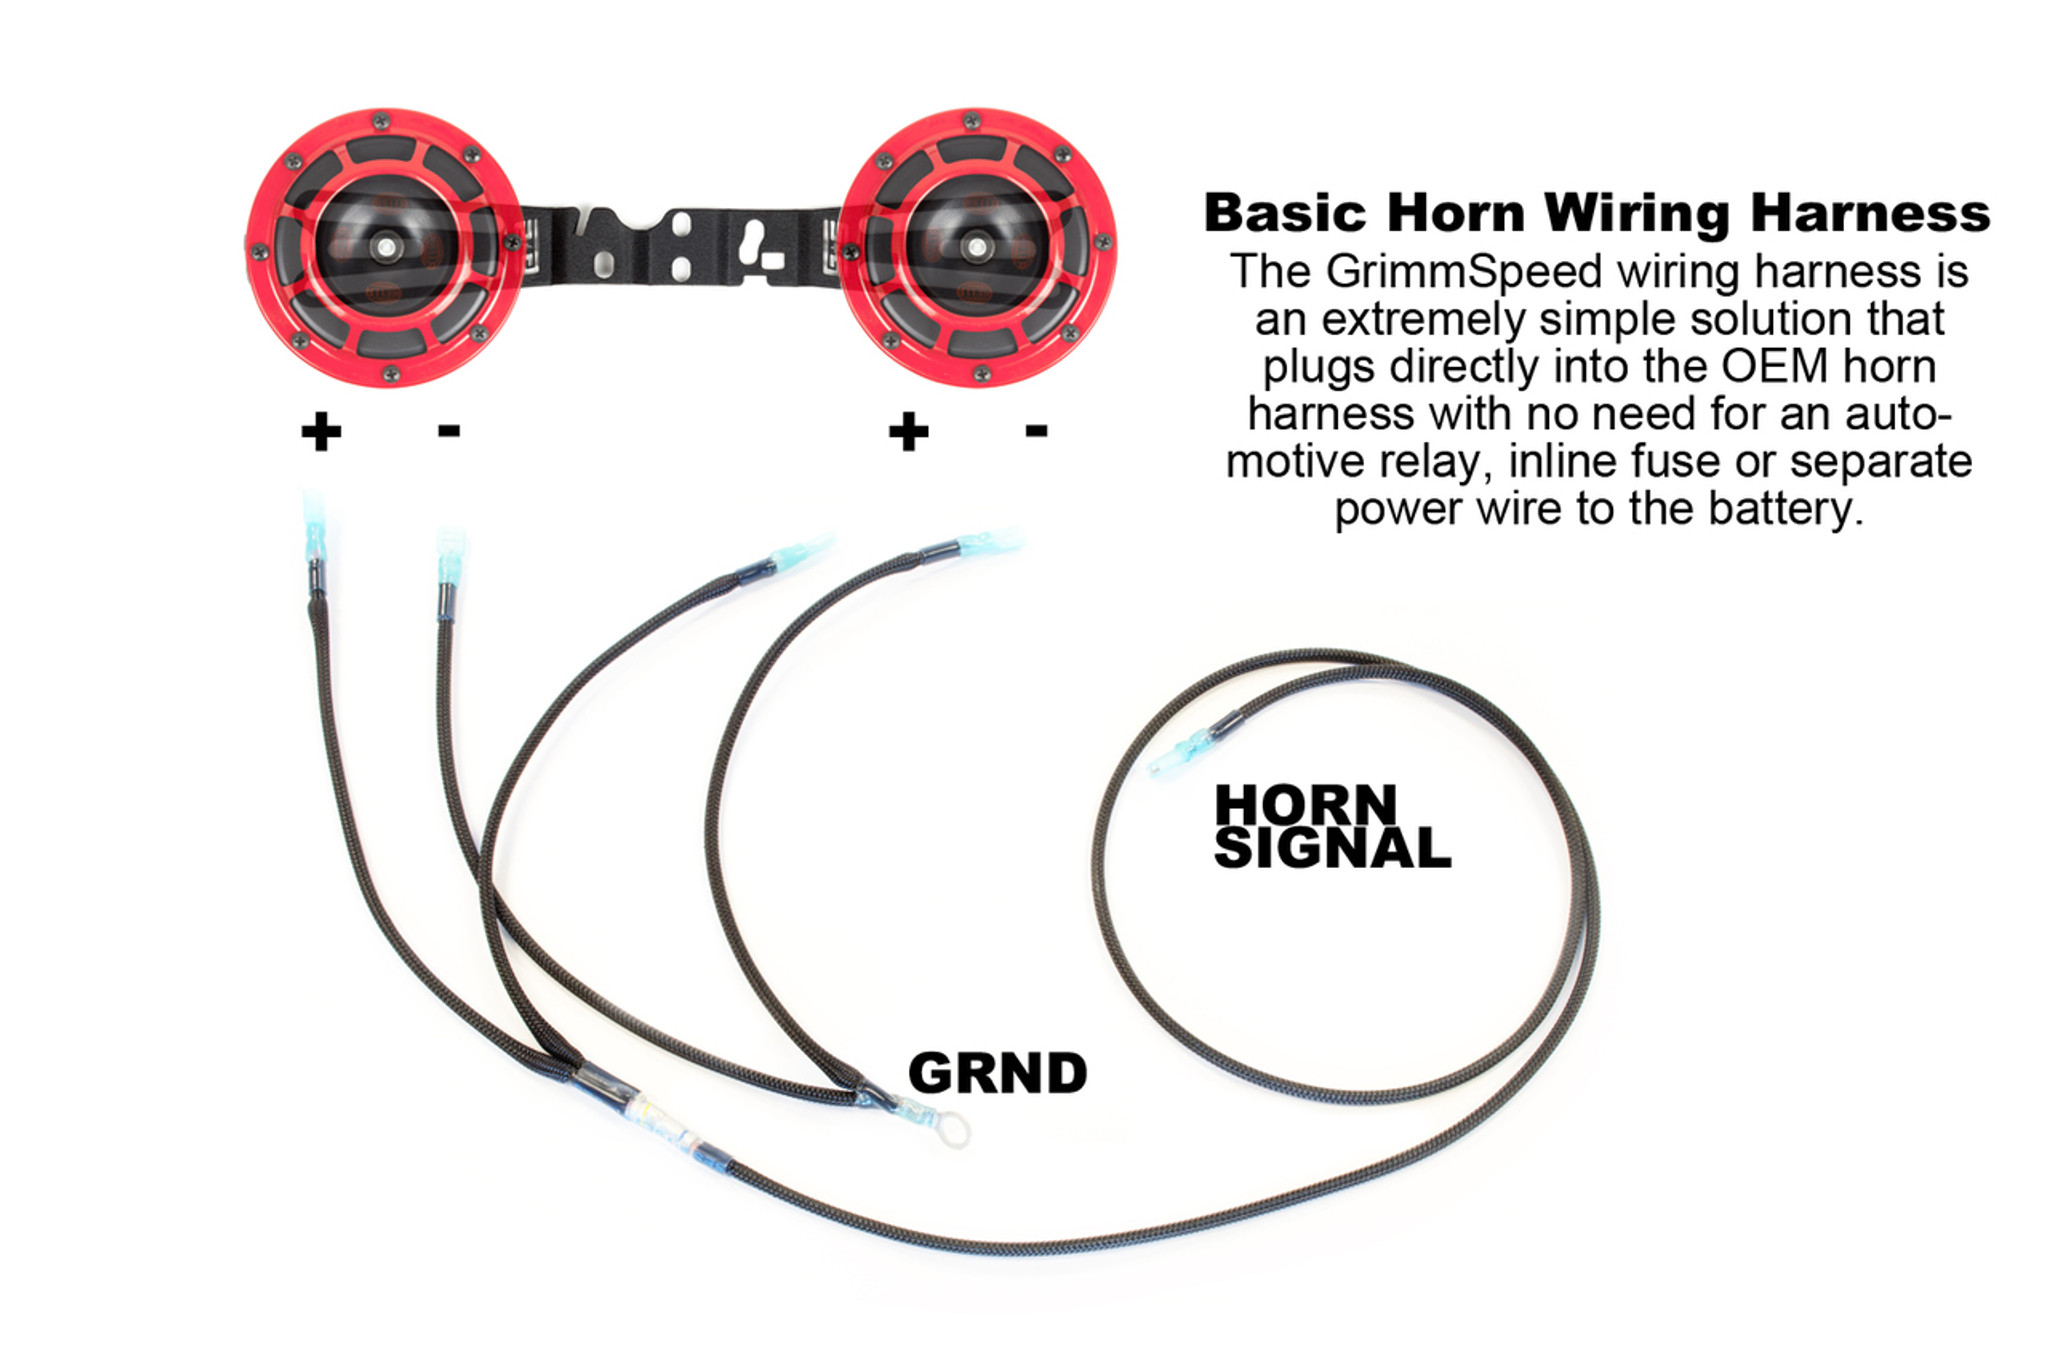 brotie_subaru_GD_GR_VA_9_1600__82146.1432237968?c\=2 horn wiring harness wiring pigtails for automotive \u2022 wiring wiring harness show milwaukee at mifinder.co